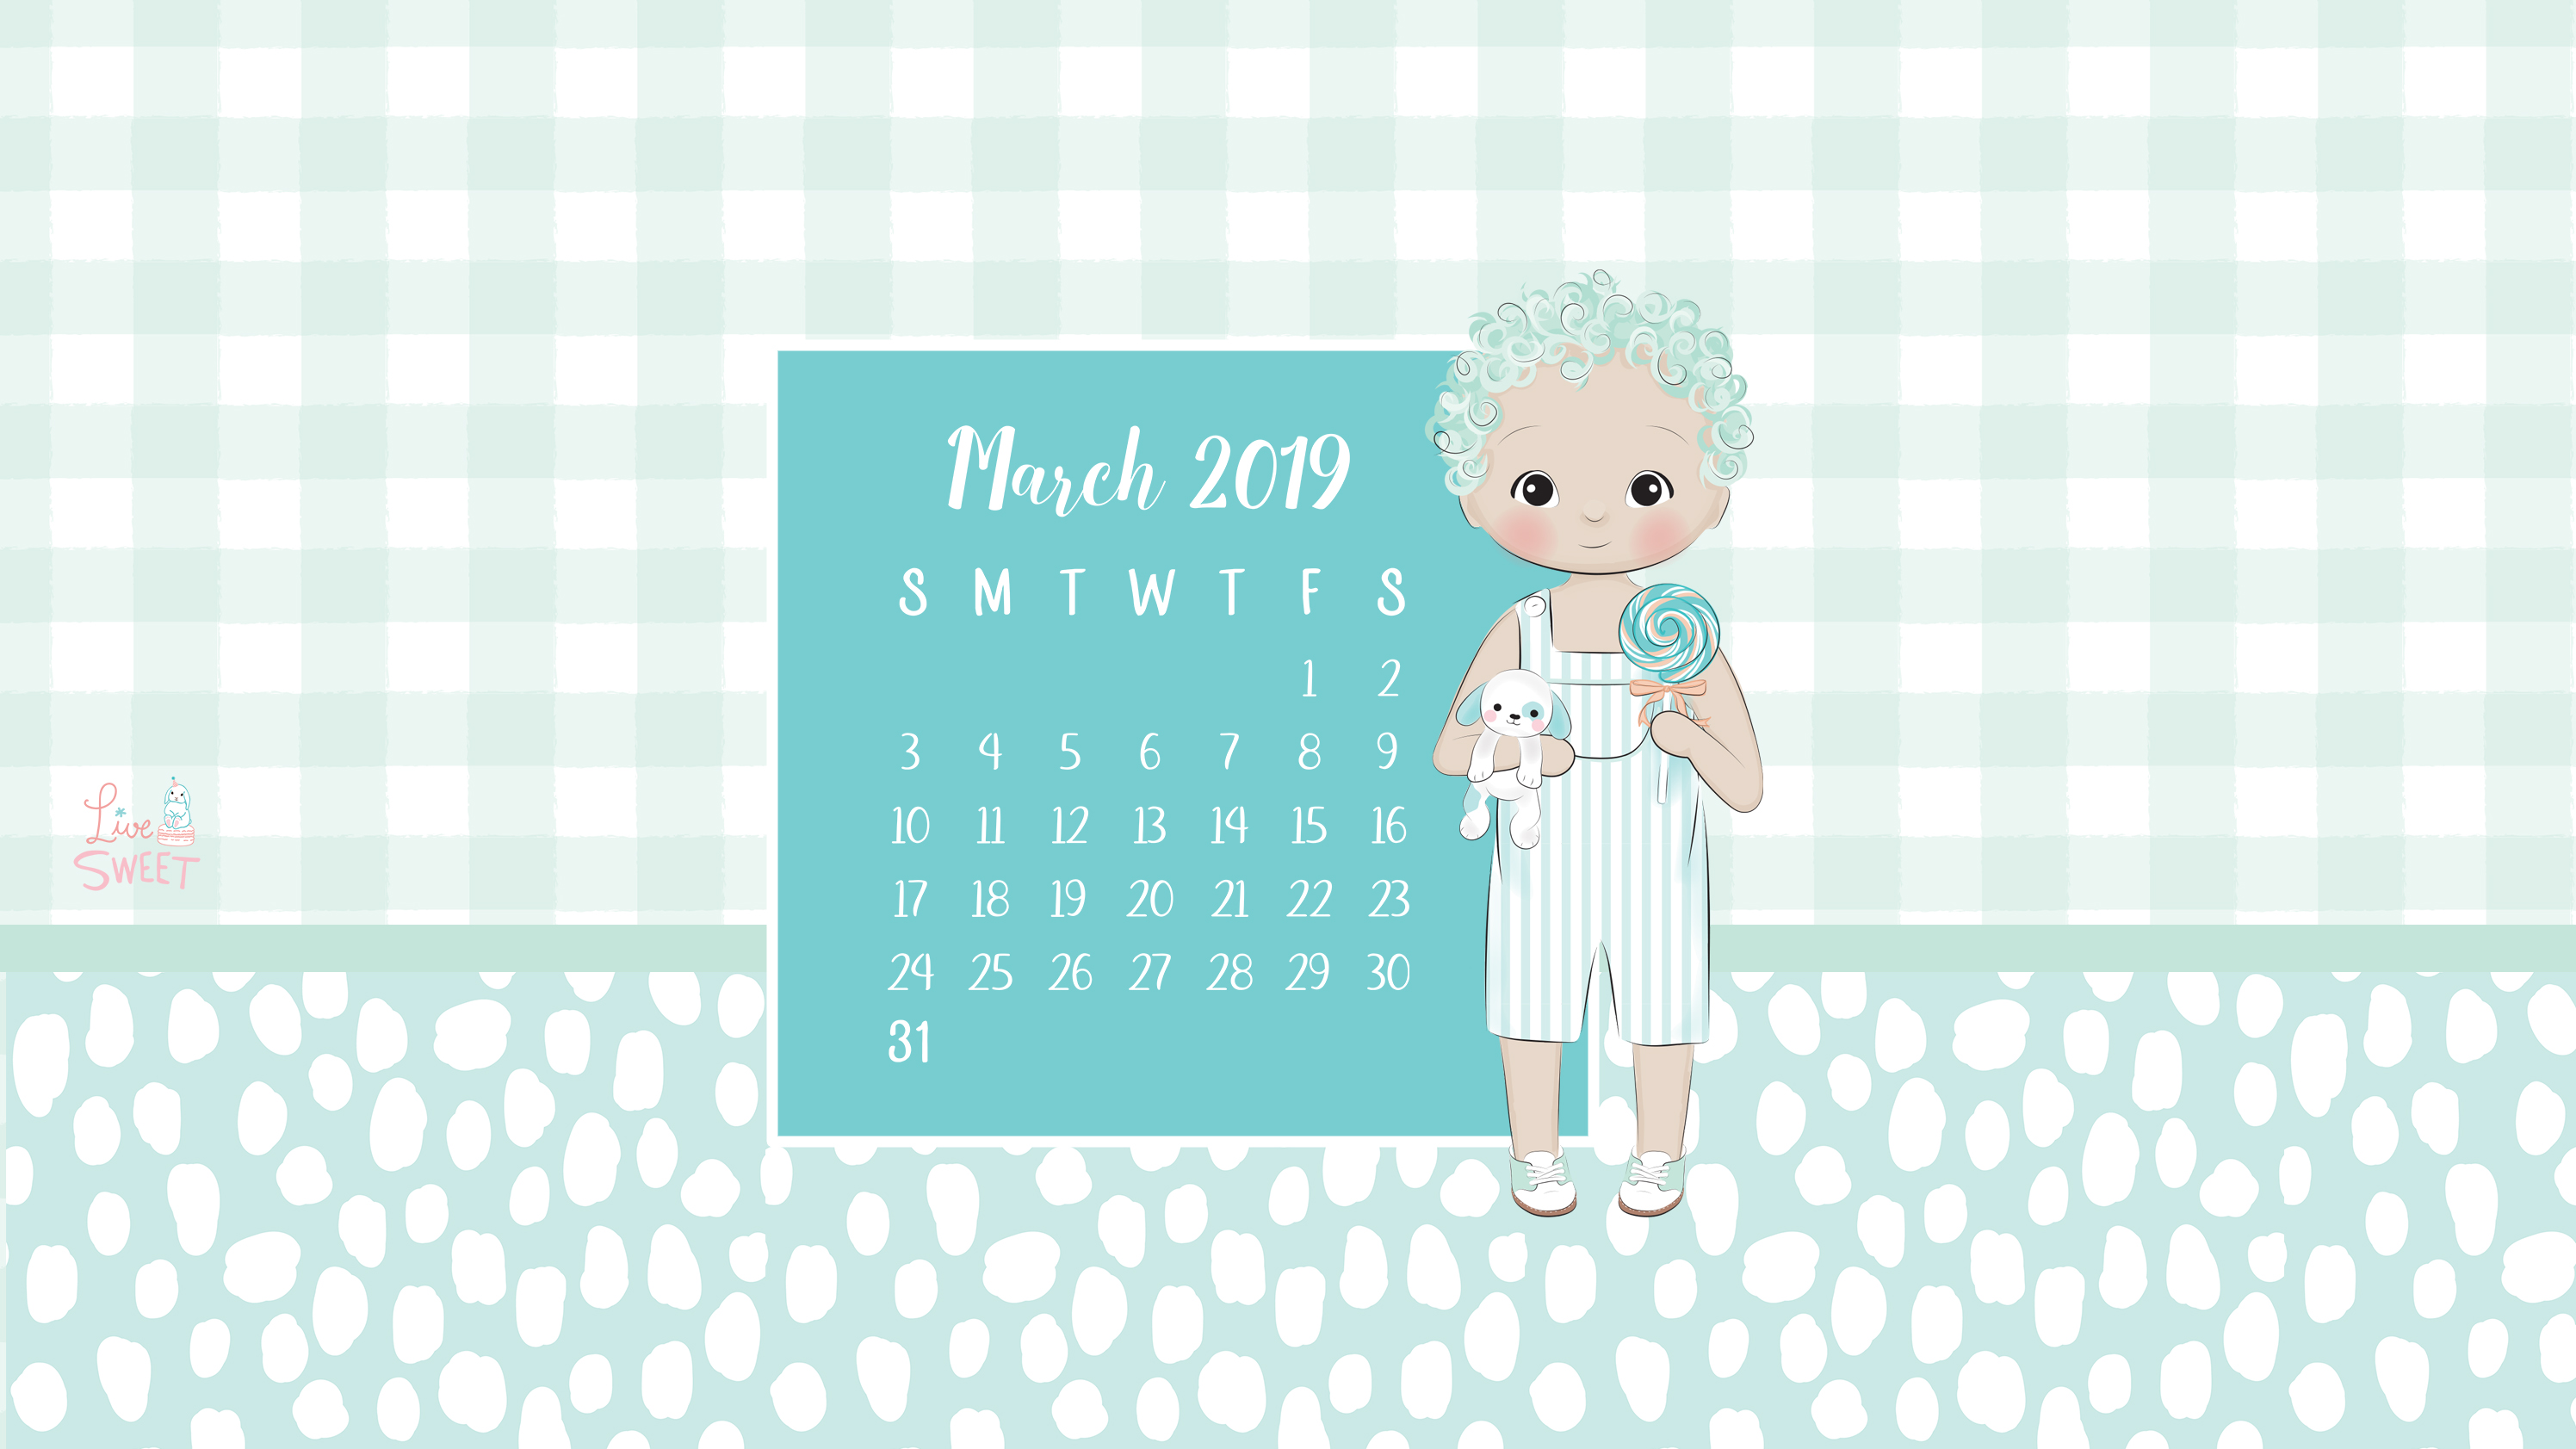 March 2019 Free Wallpapers Live Sweet